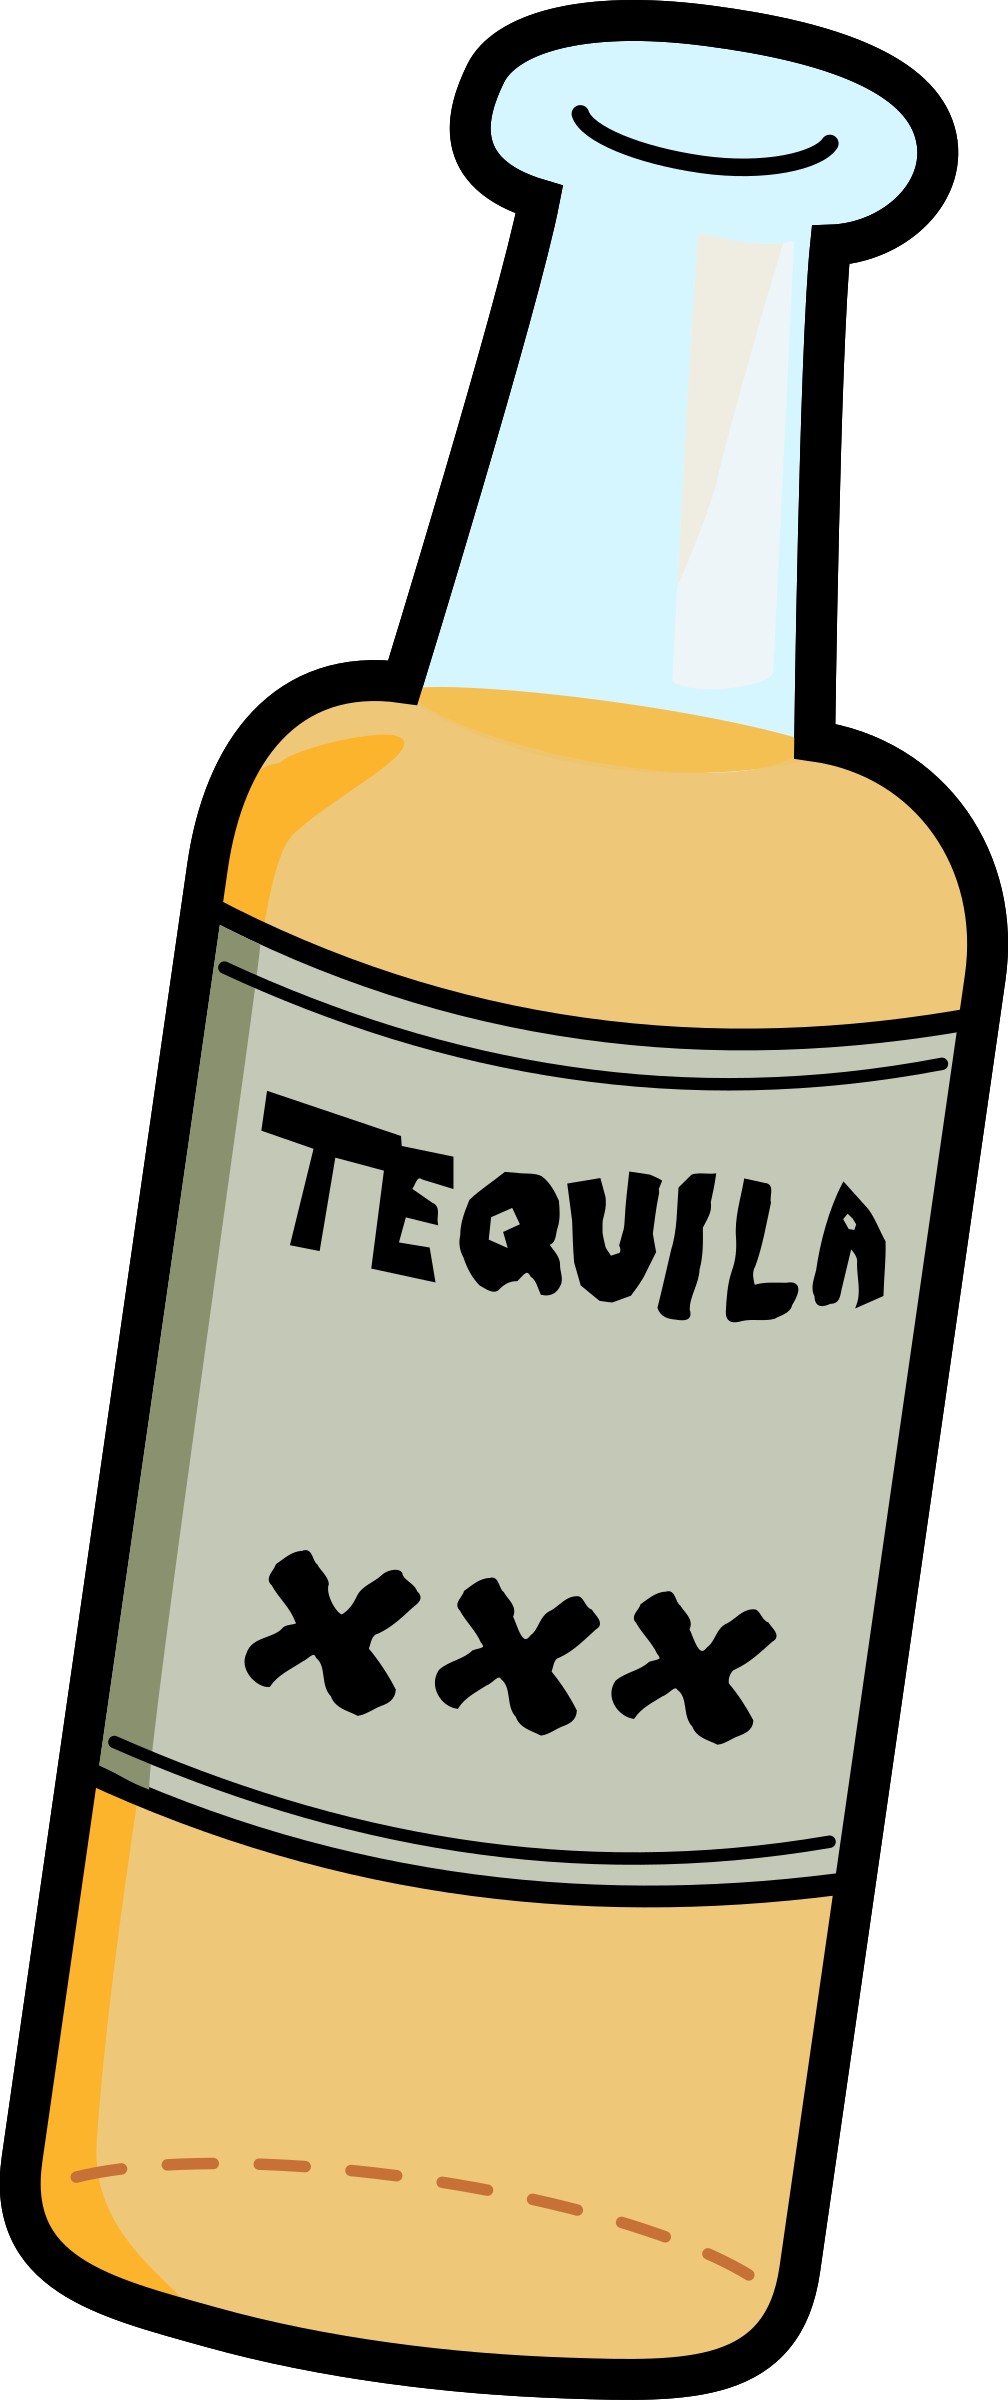 Tequila Drinks Public Use Free